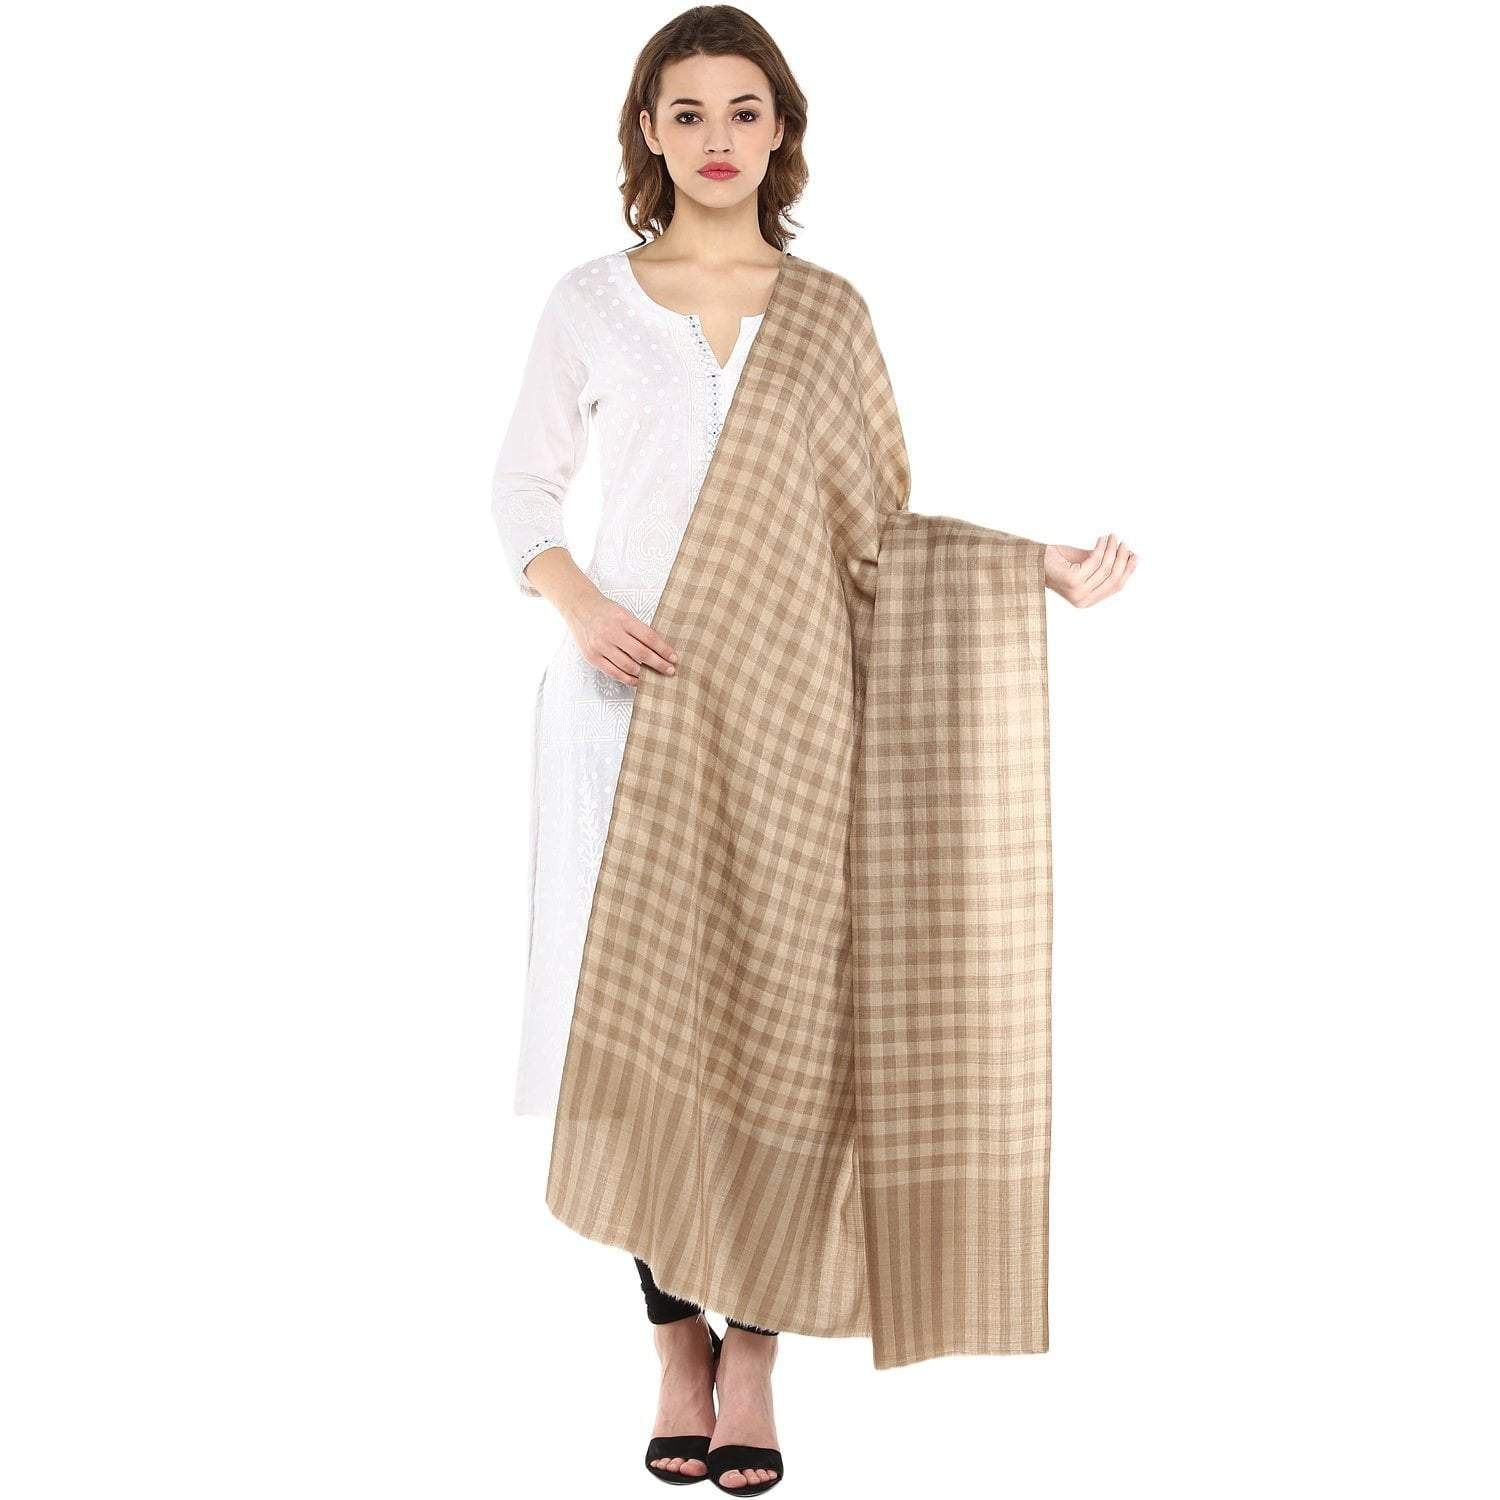 Pashtush Store Pashtush Ultra Soft Womens Wool Shawl Check Design, Natural Faux Pashmina Shawl (Large)